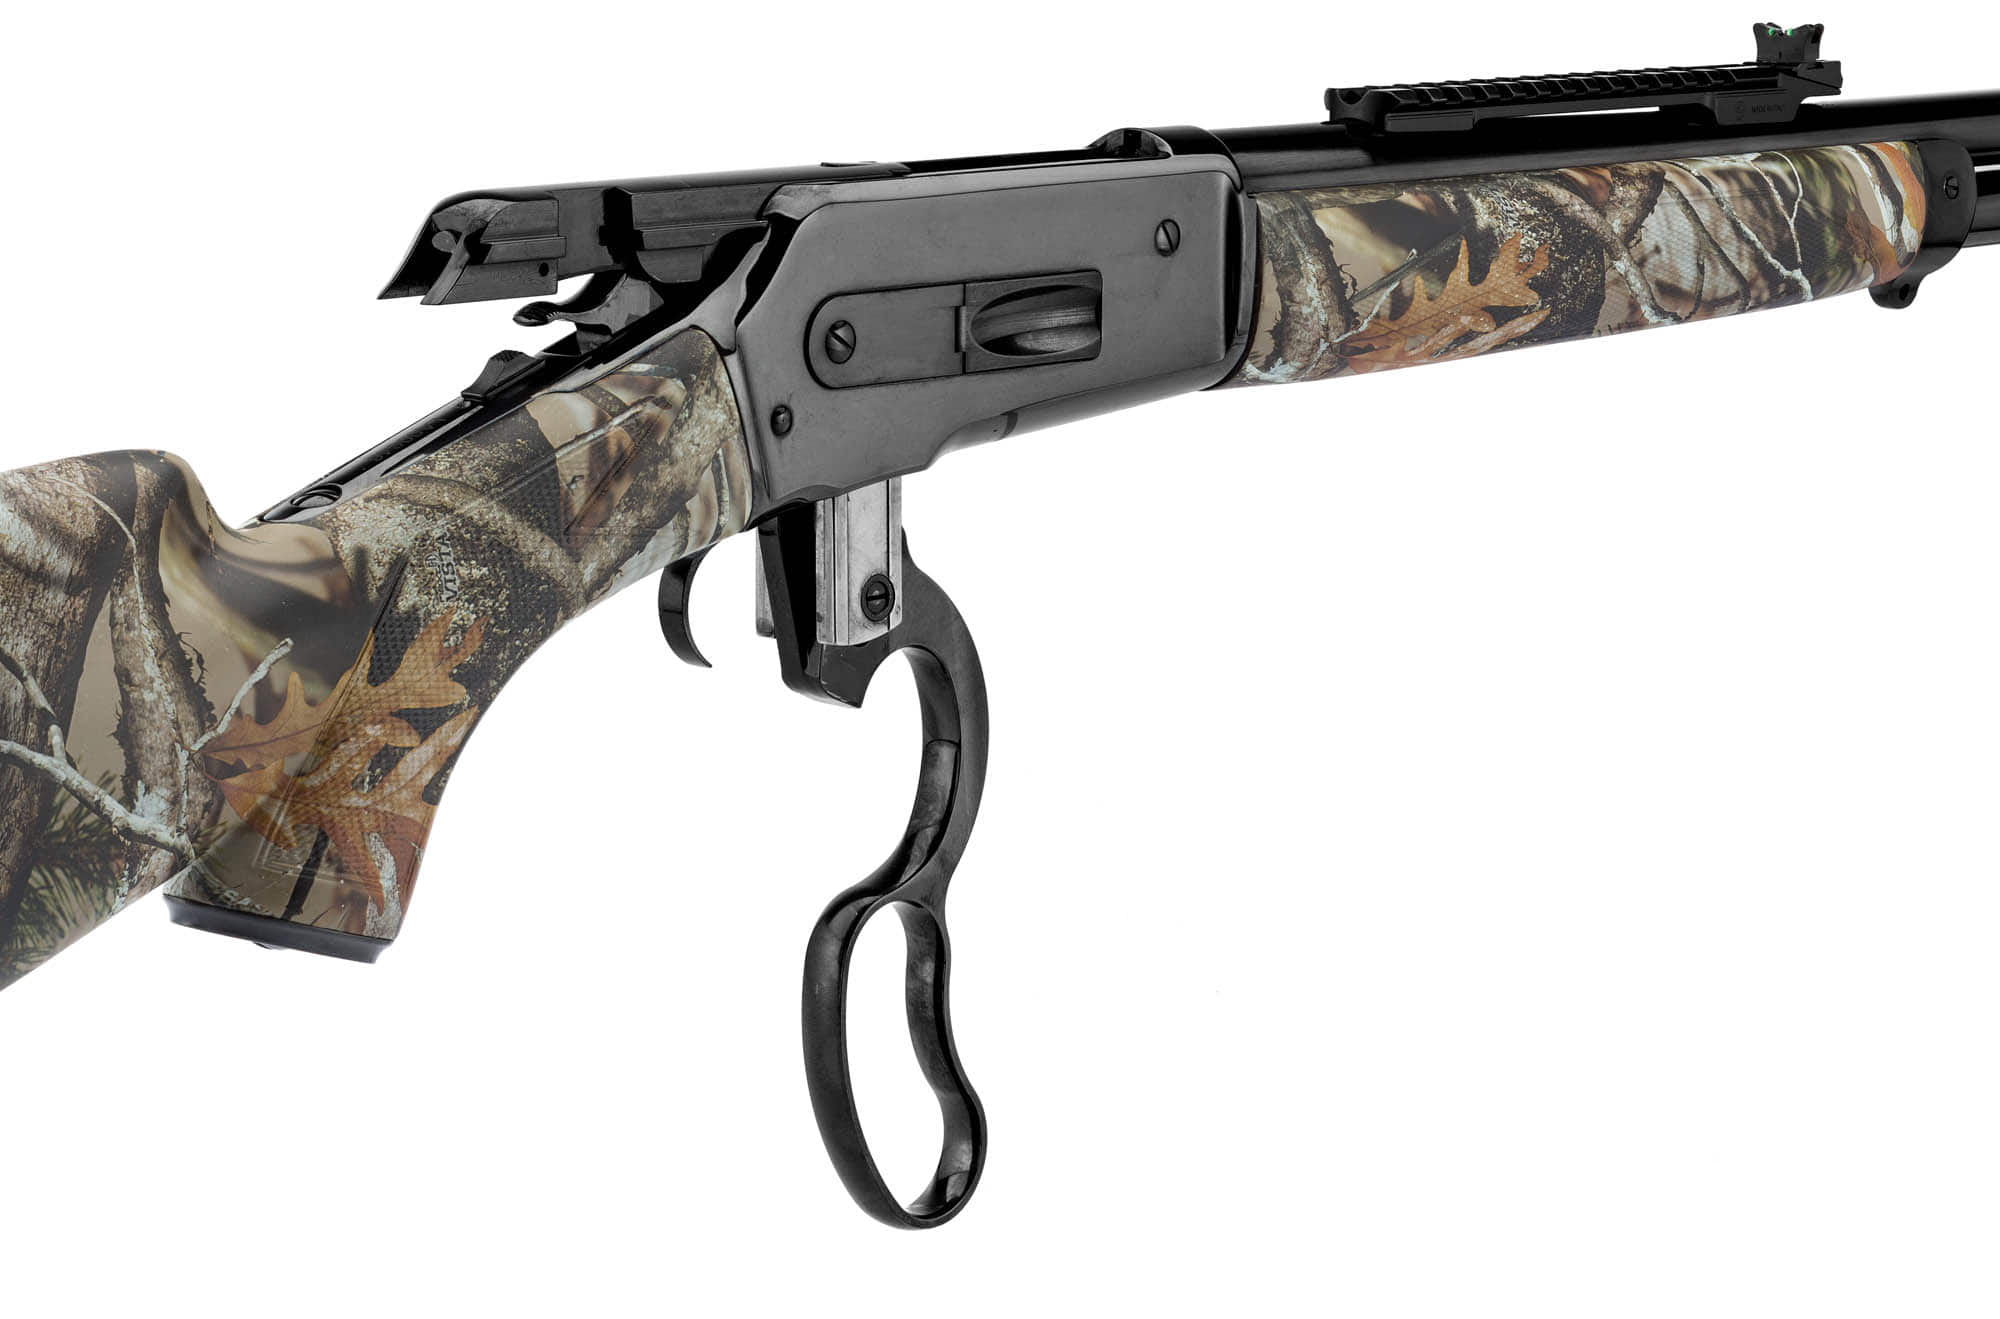 DPSM741-5-Carabine Pedersoli lever action mod. 86/71 cal . 444 Marlin - camo forest - DPSM741